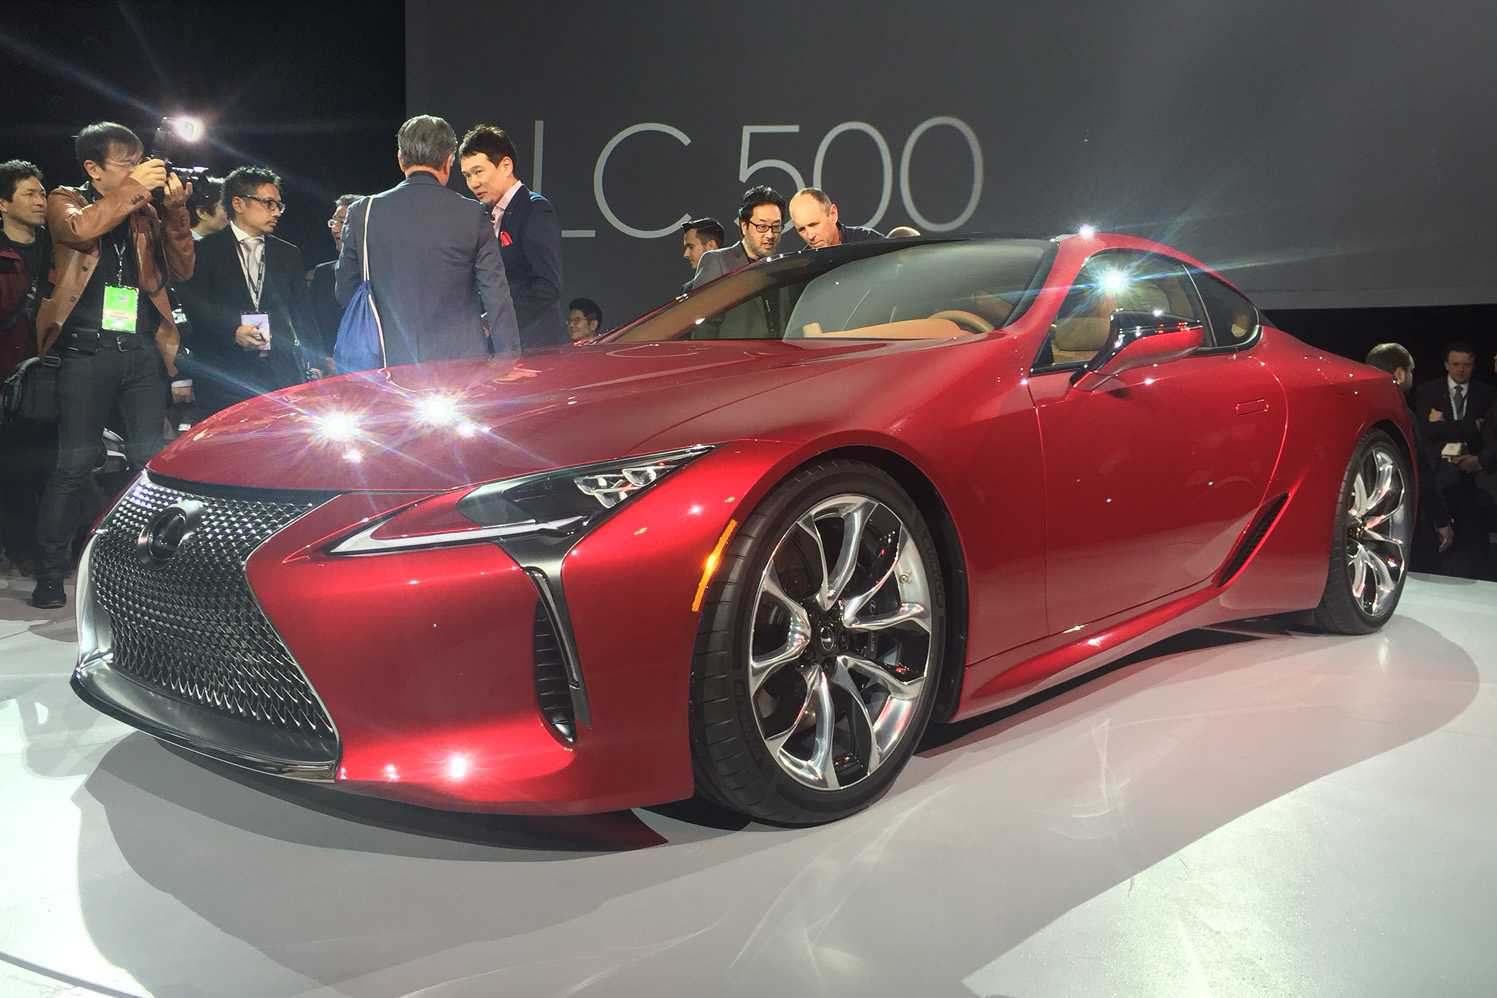 Lexus LC 500 Coupe Set For Grand Launch at Goodwood Expo